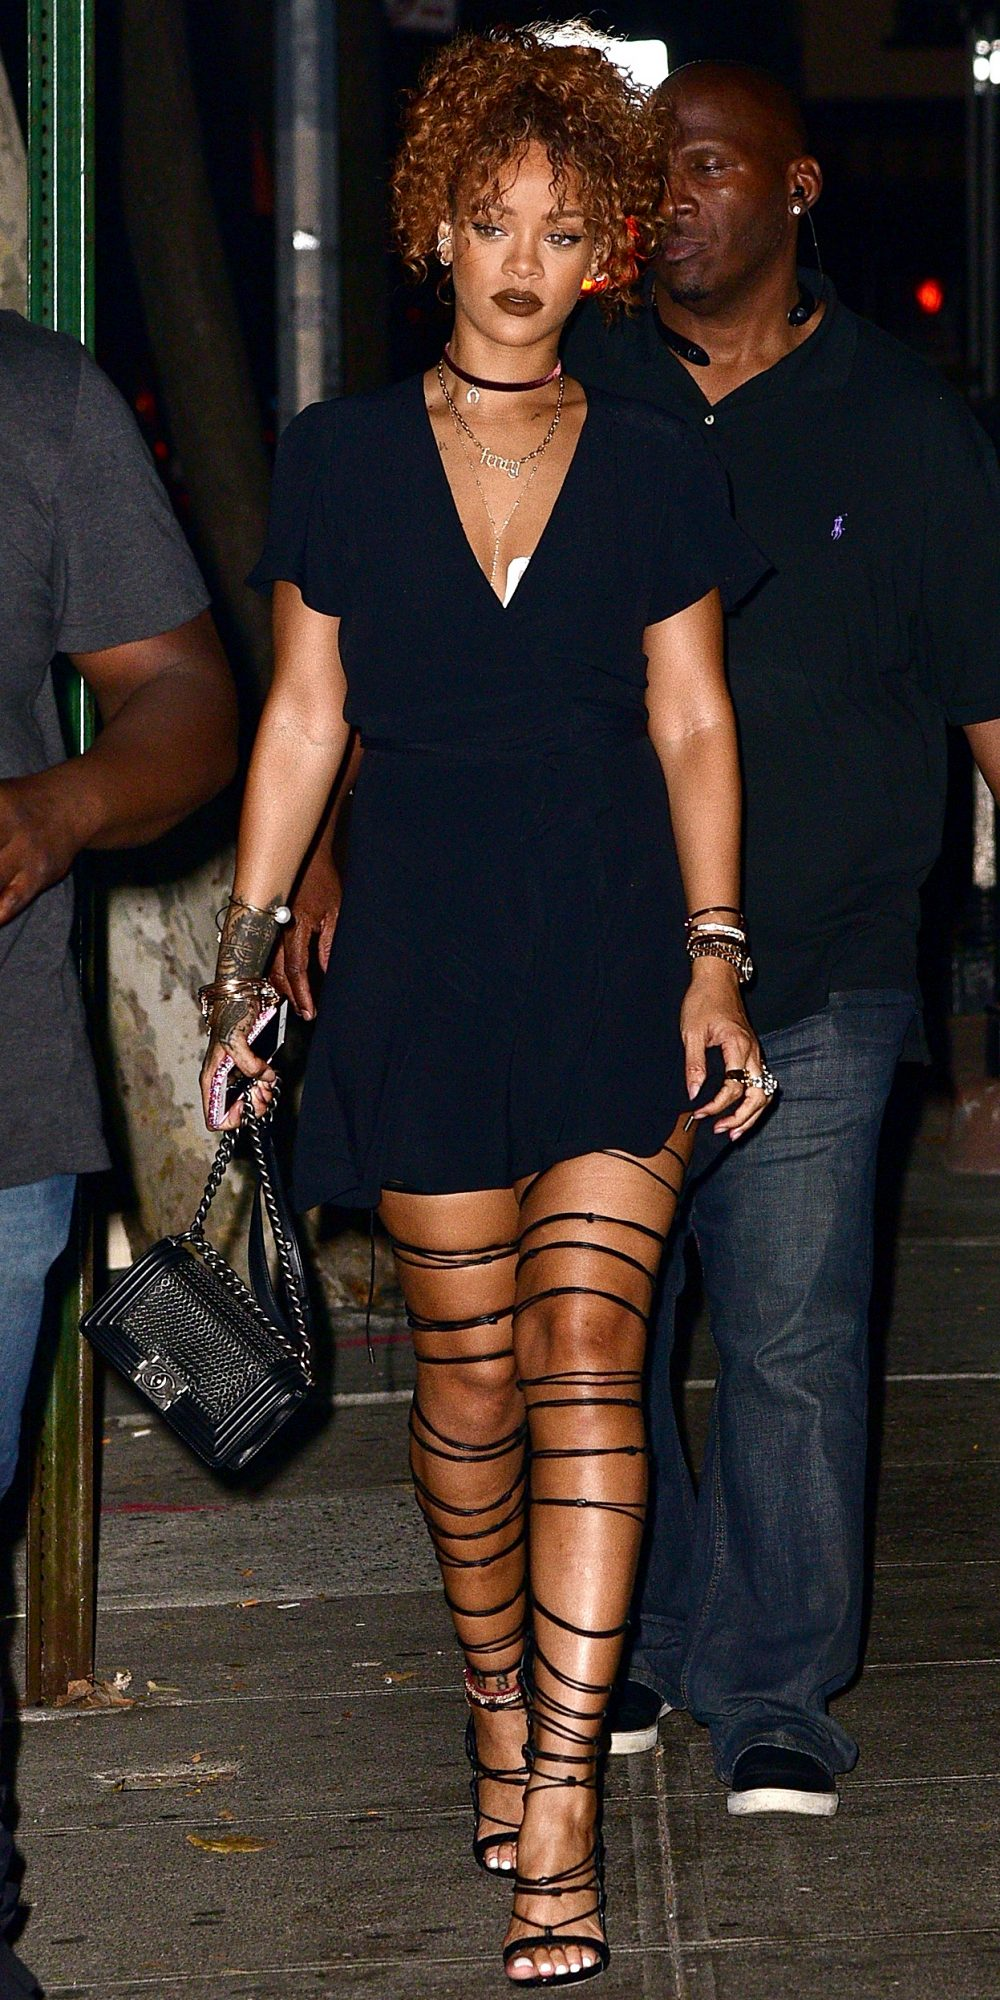 LBD + Thigh-High Lace-Up Sandals